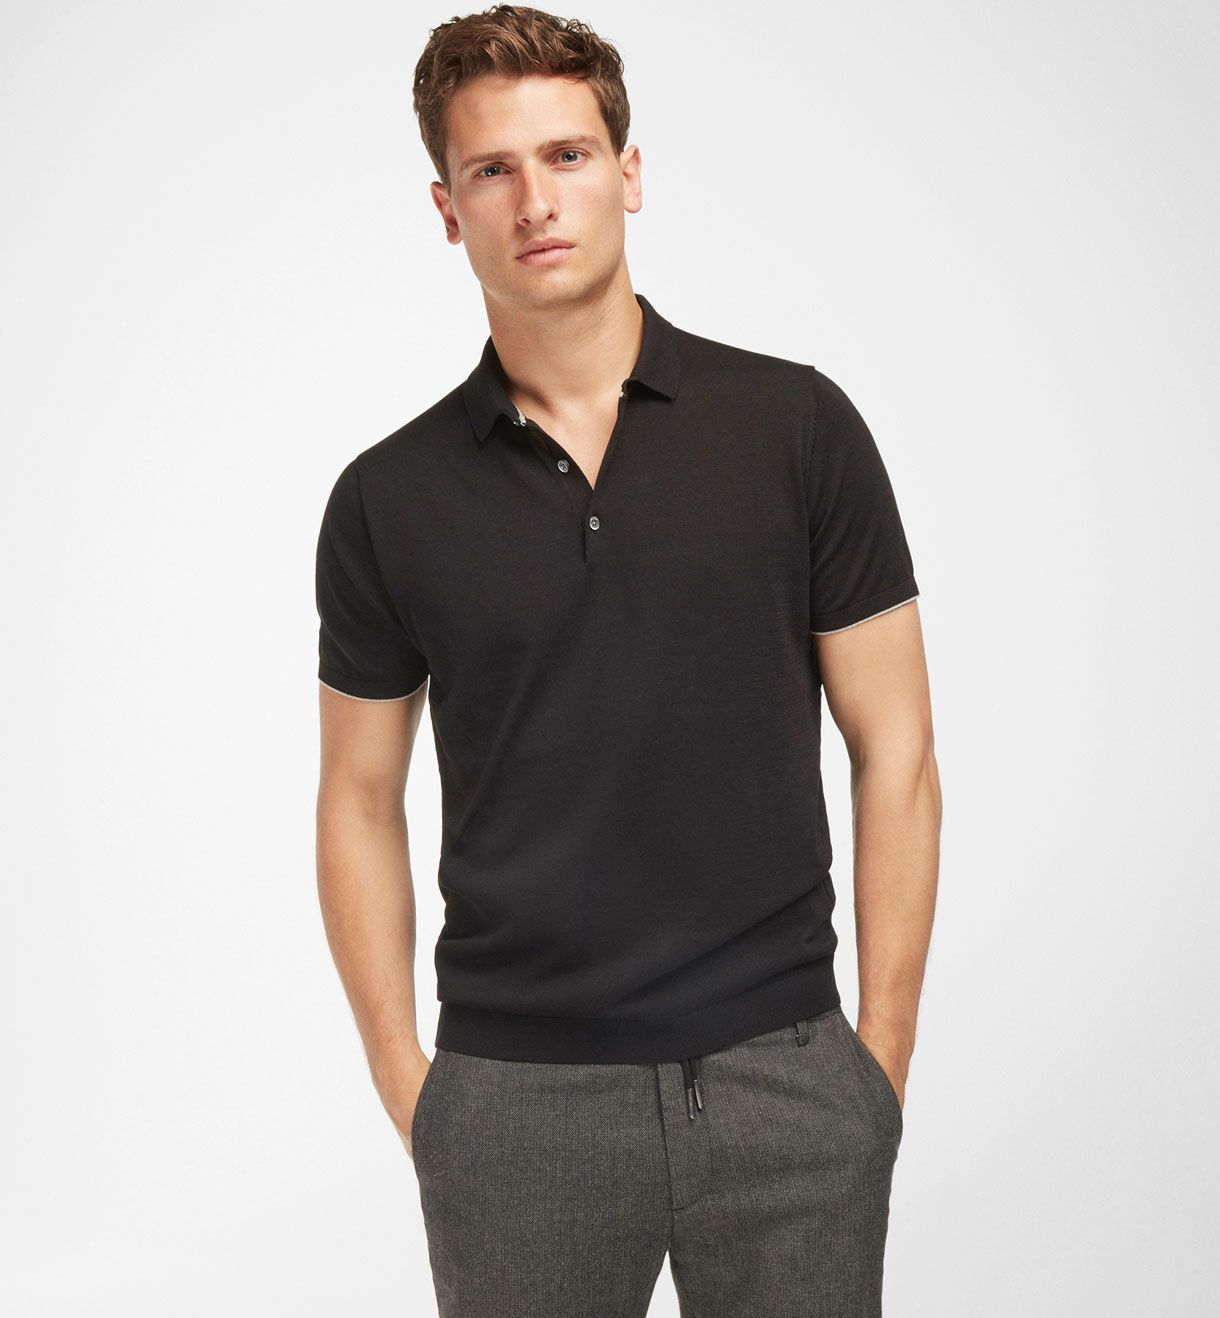 View All Polo Shirts And T Shirts Massimo Dutti